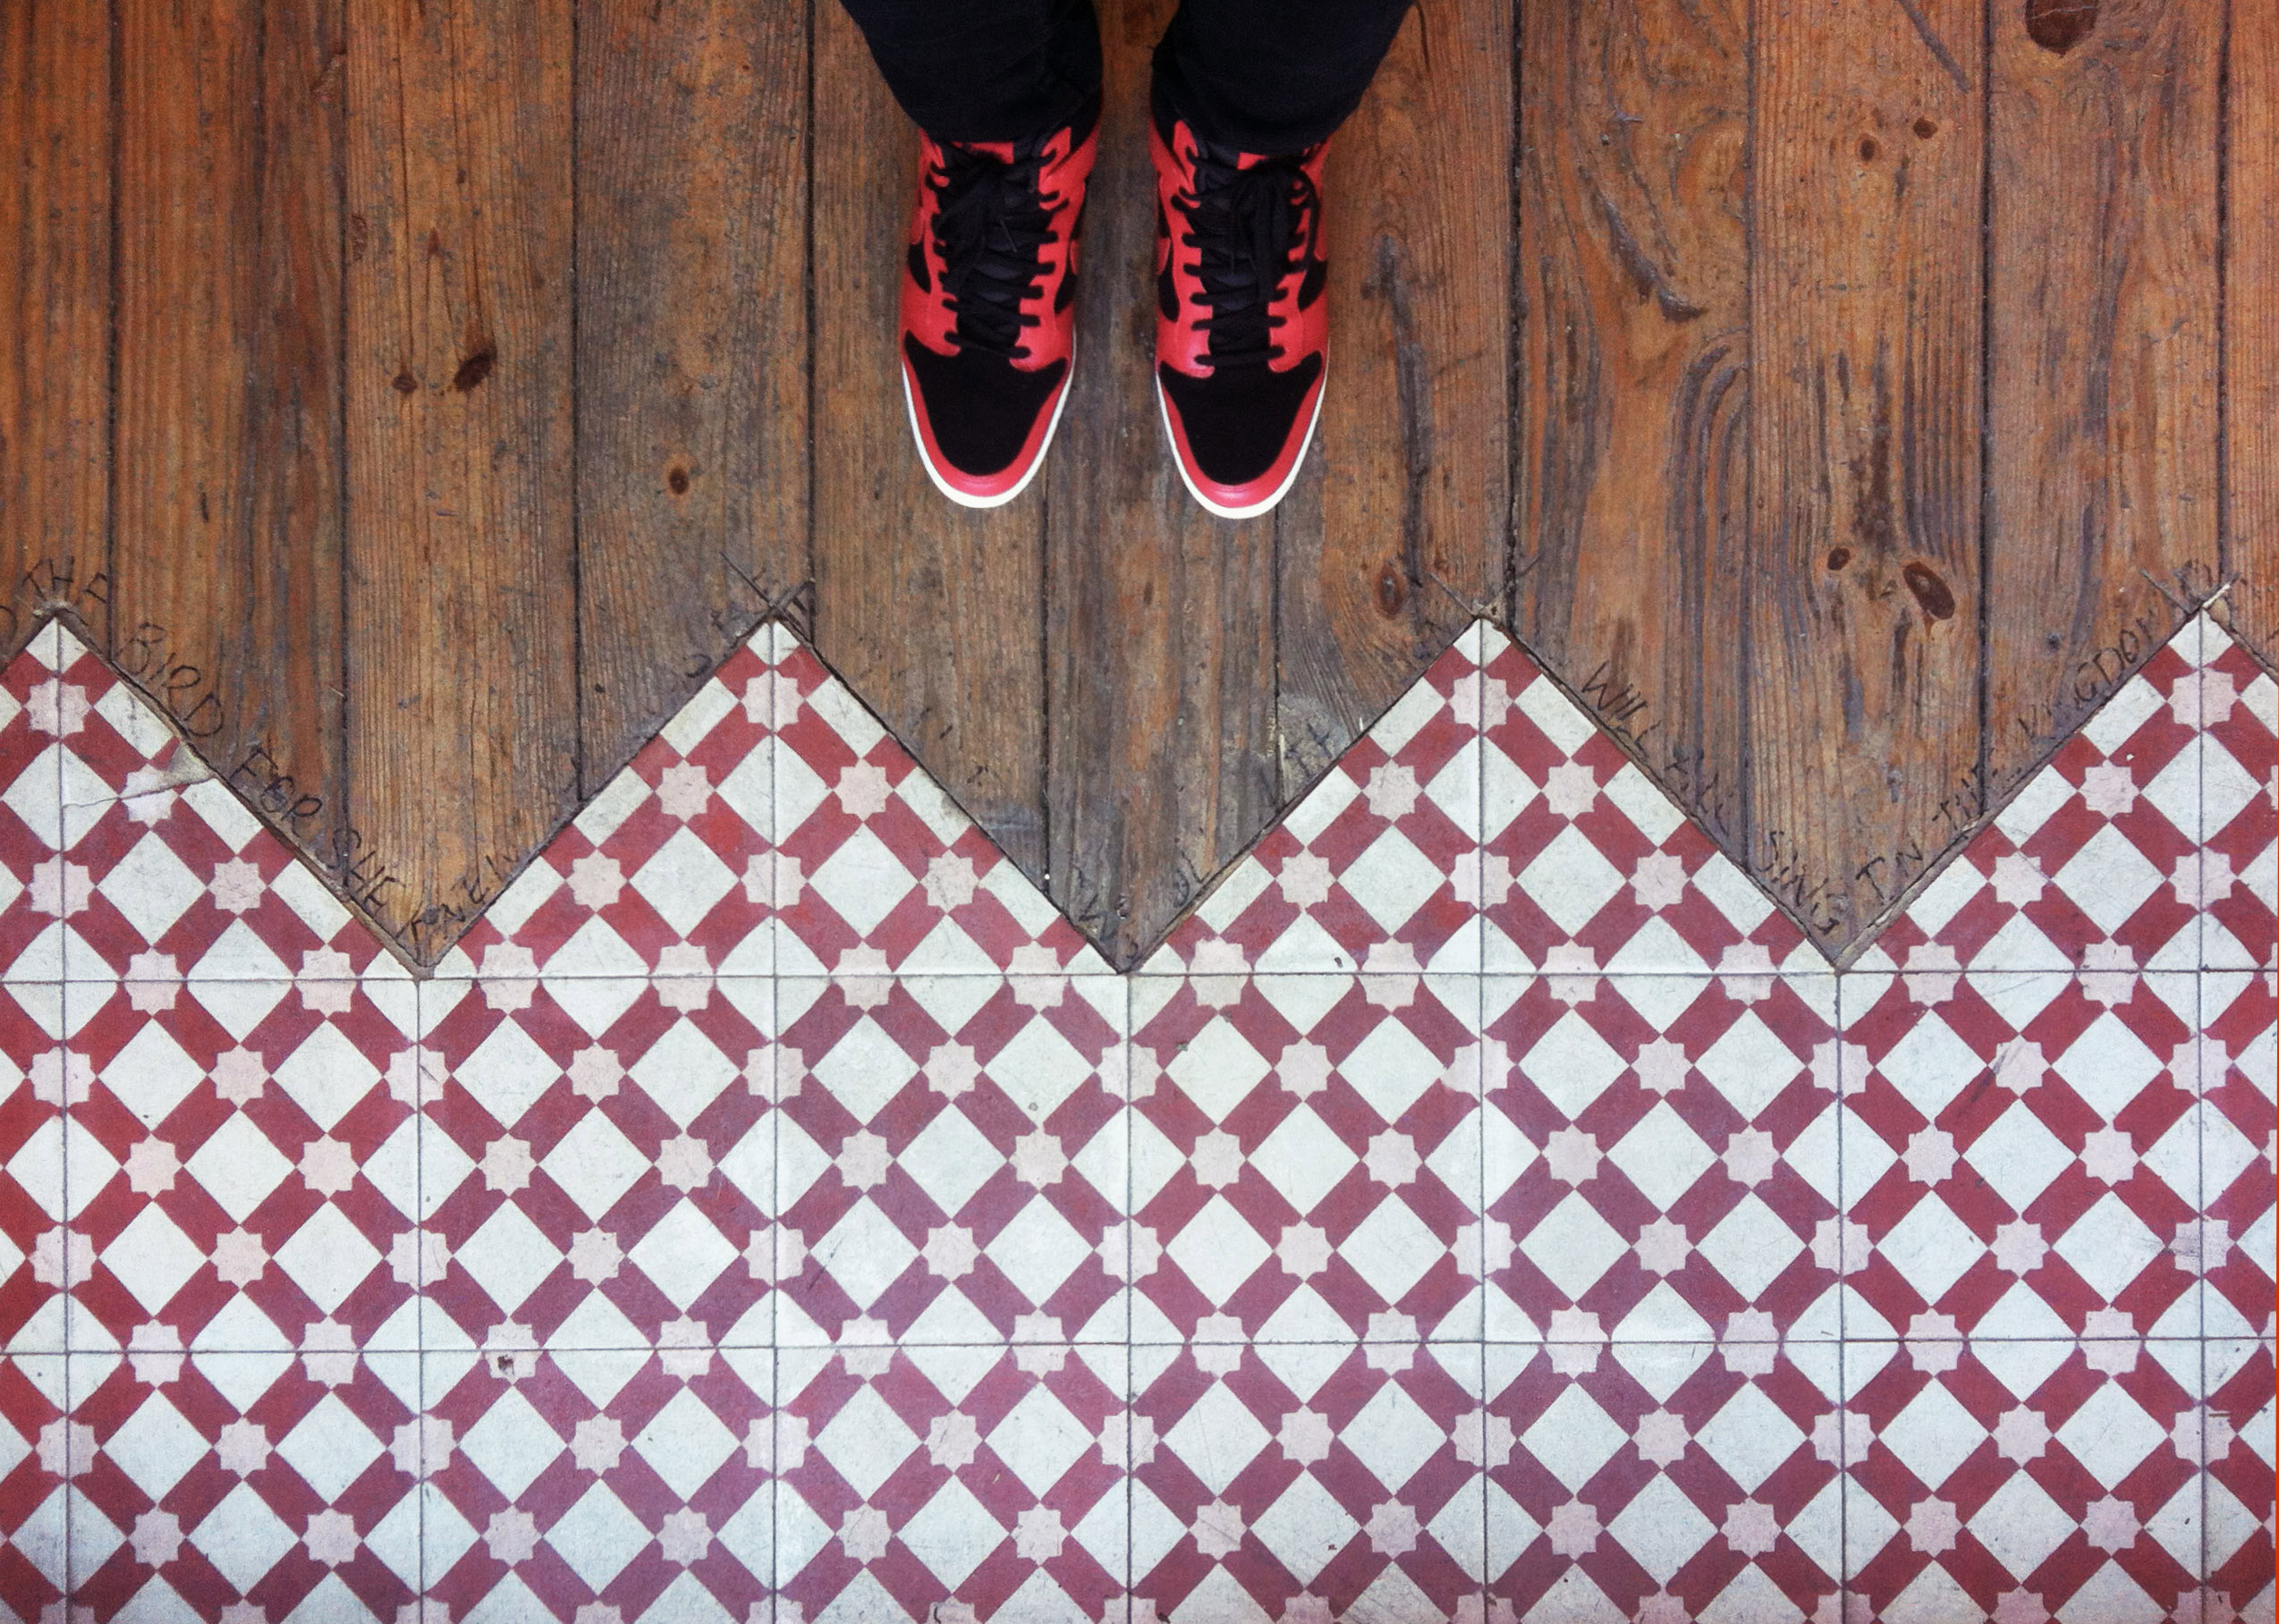 Mosaic House Moroccan tile Anemone C14-10-20 White Brick Red Bisque, pink  cement, encaustic, field, pattern